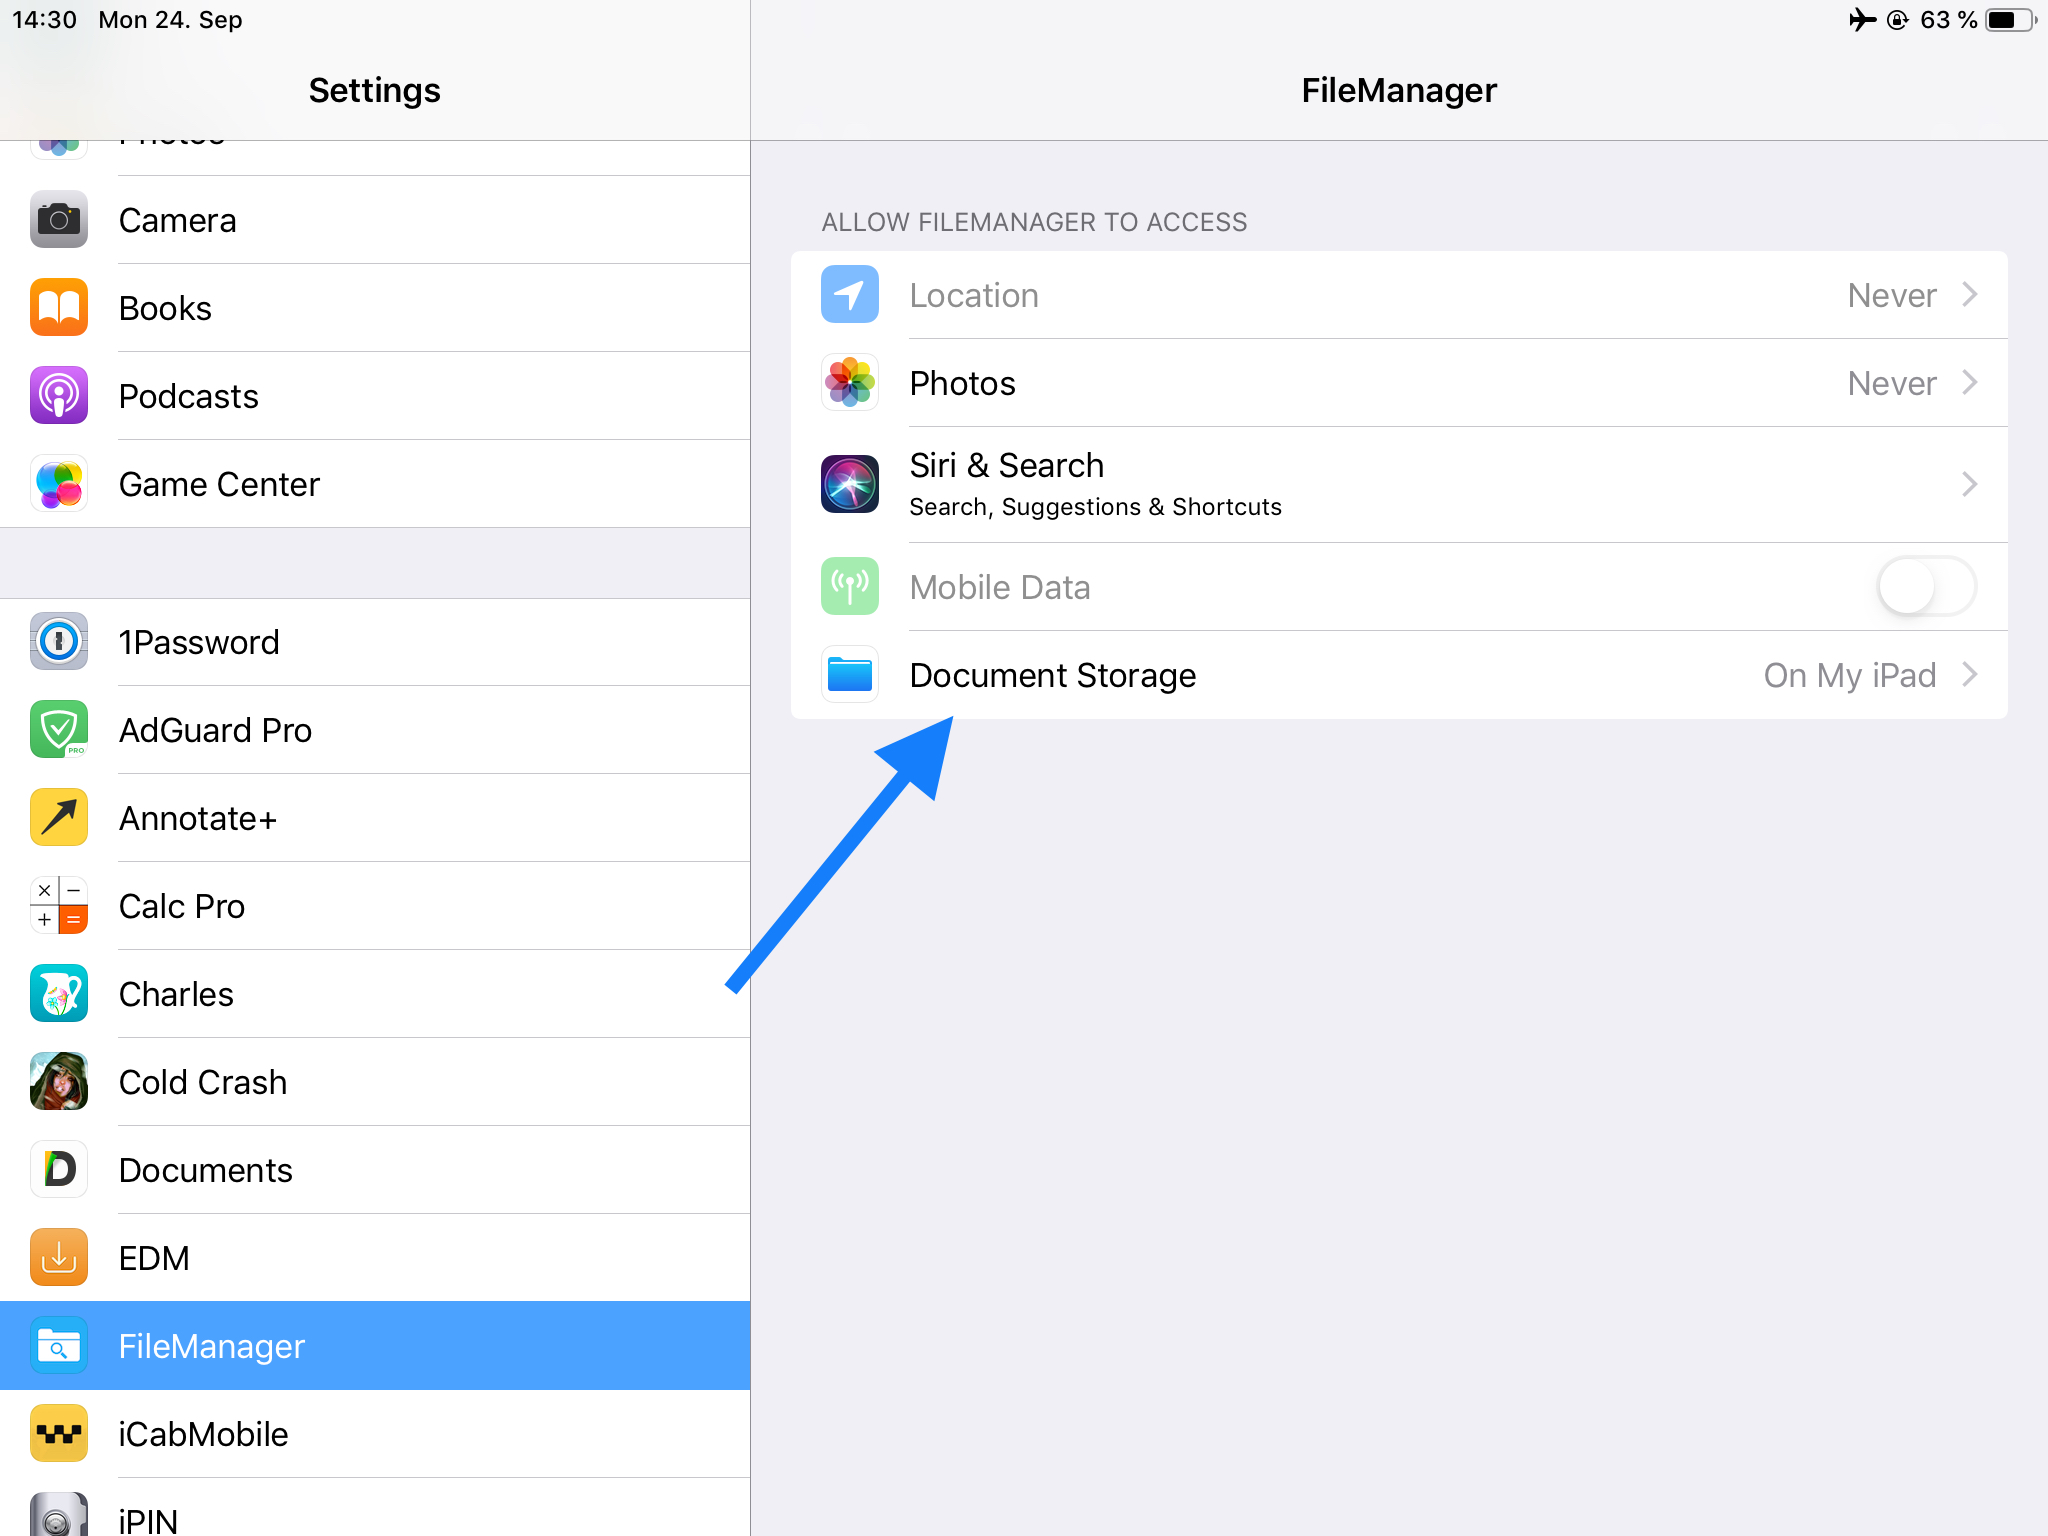 iOS file manager apps and other apps - Megathread